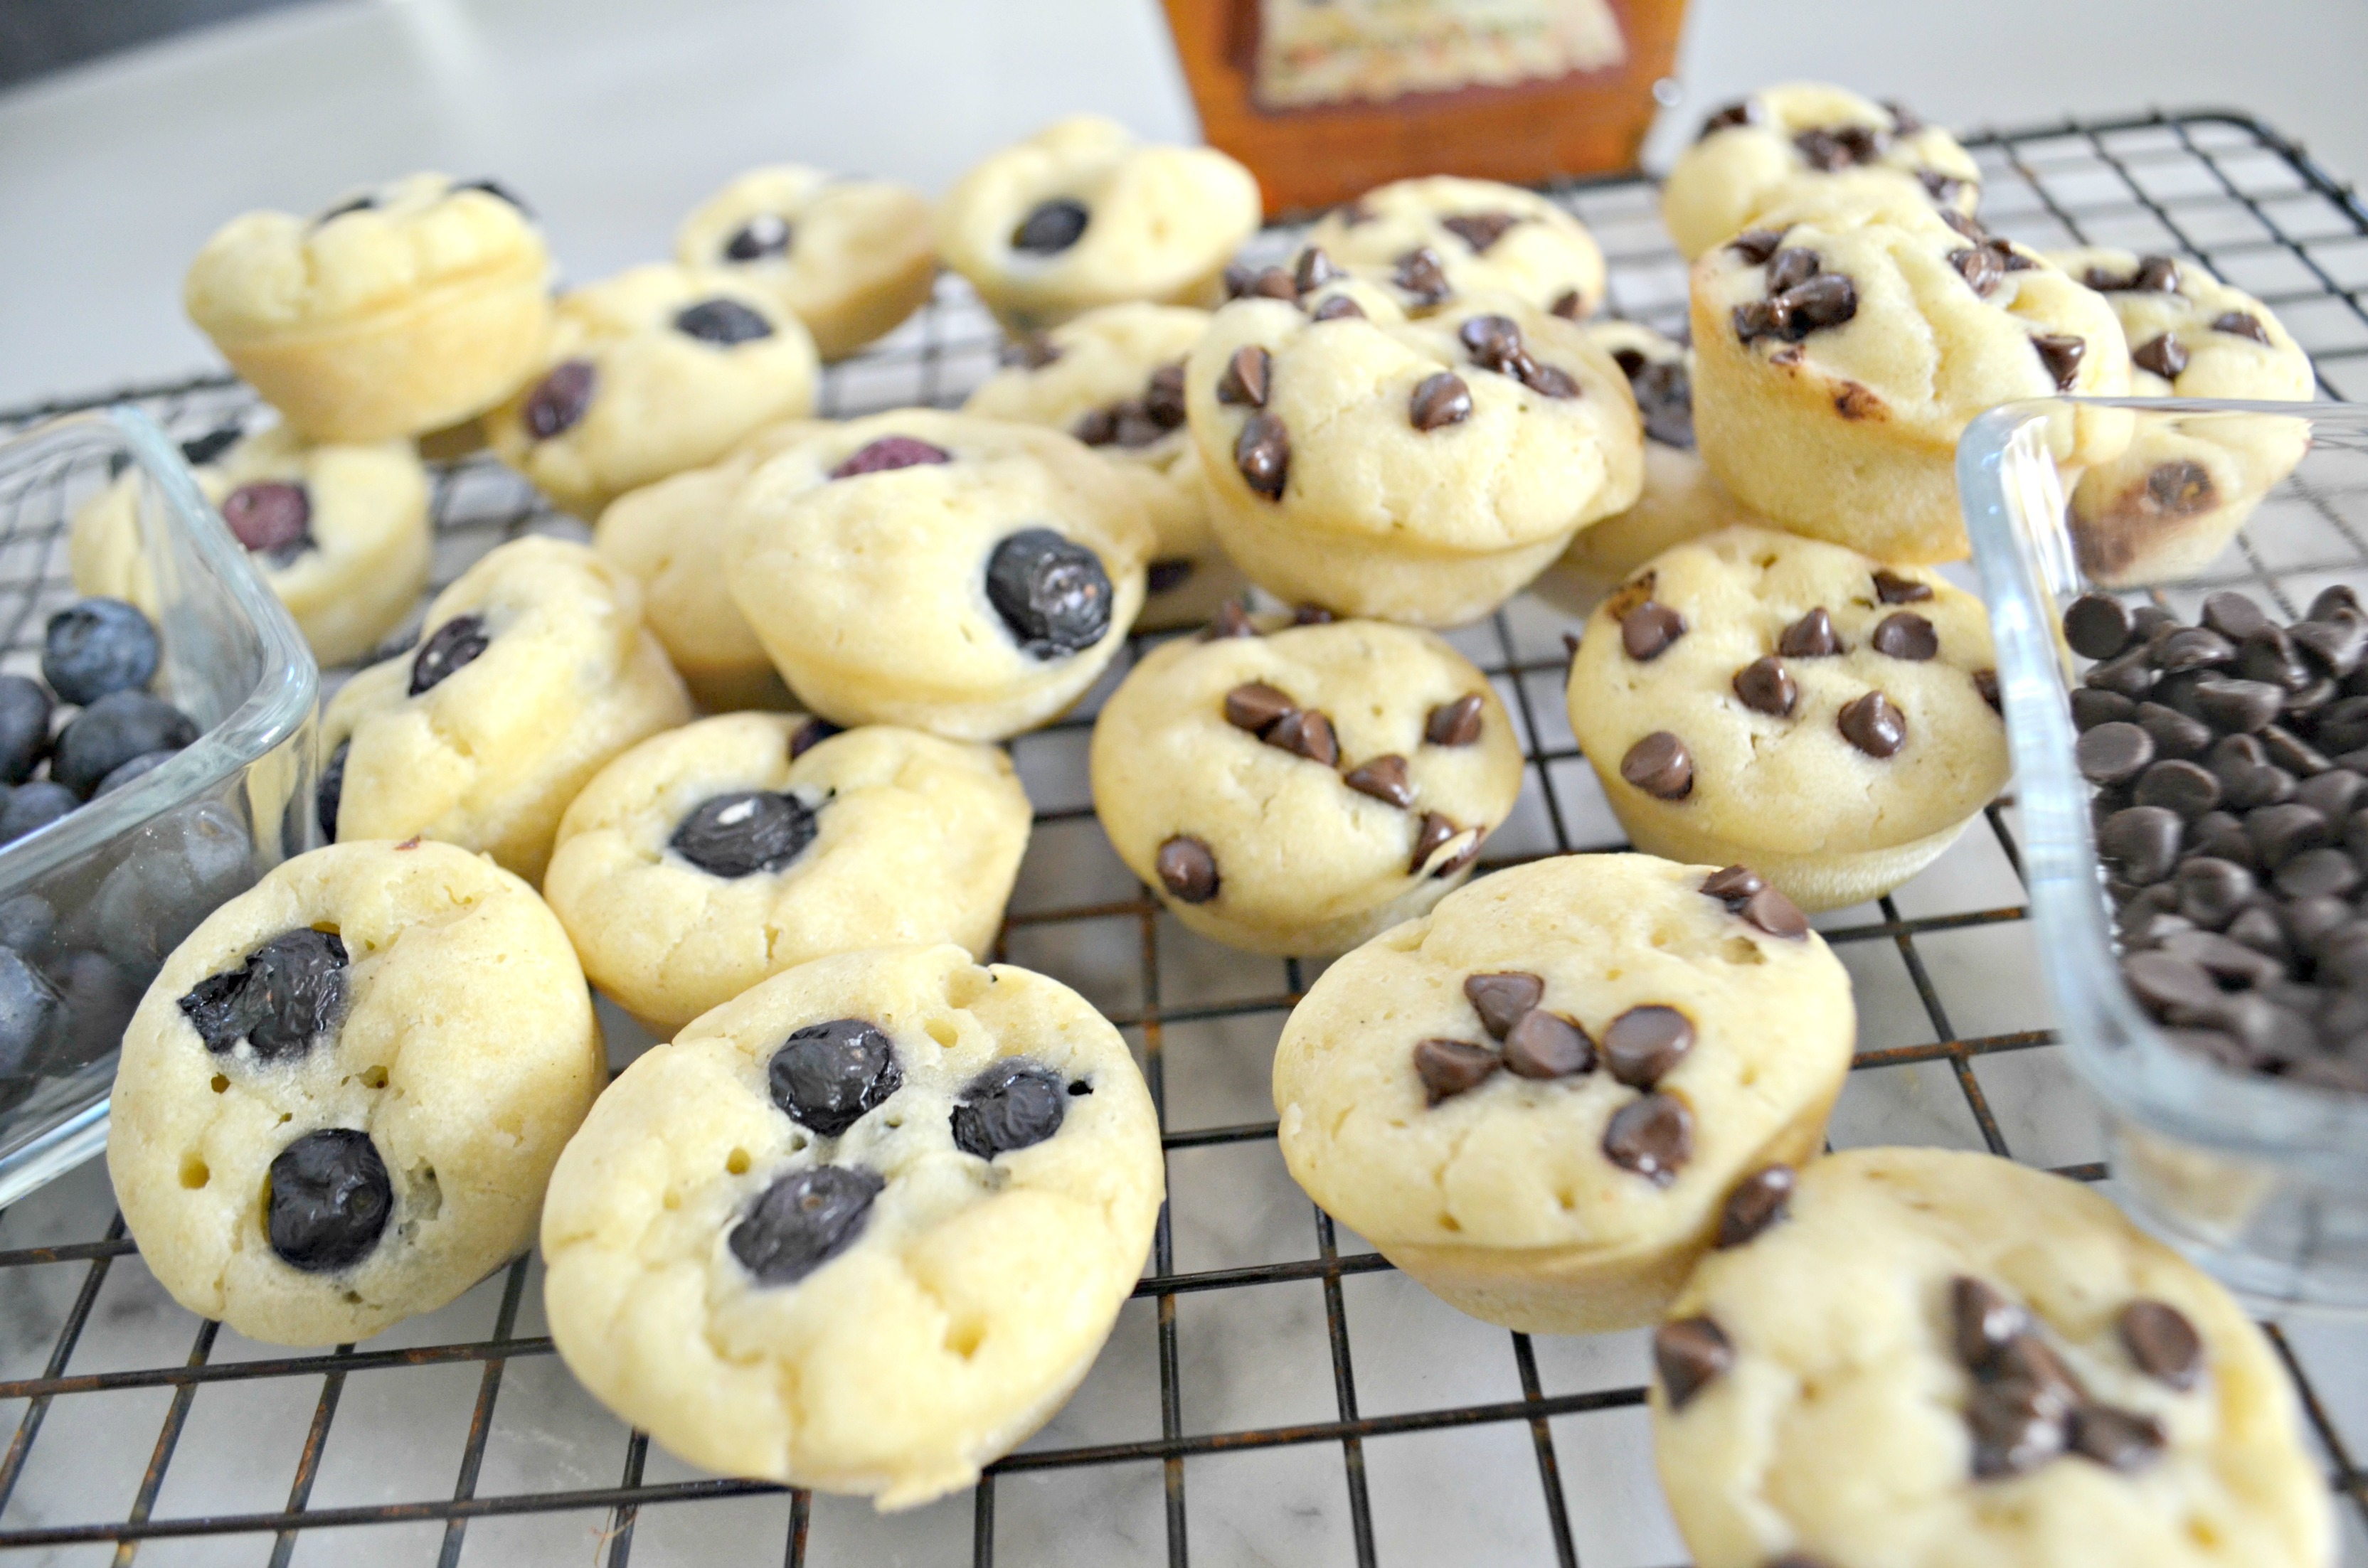 These gluten-free pancake bites are an easy breakfast idea – muffins on a cooling rack